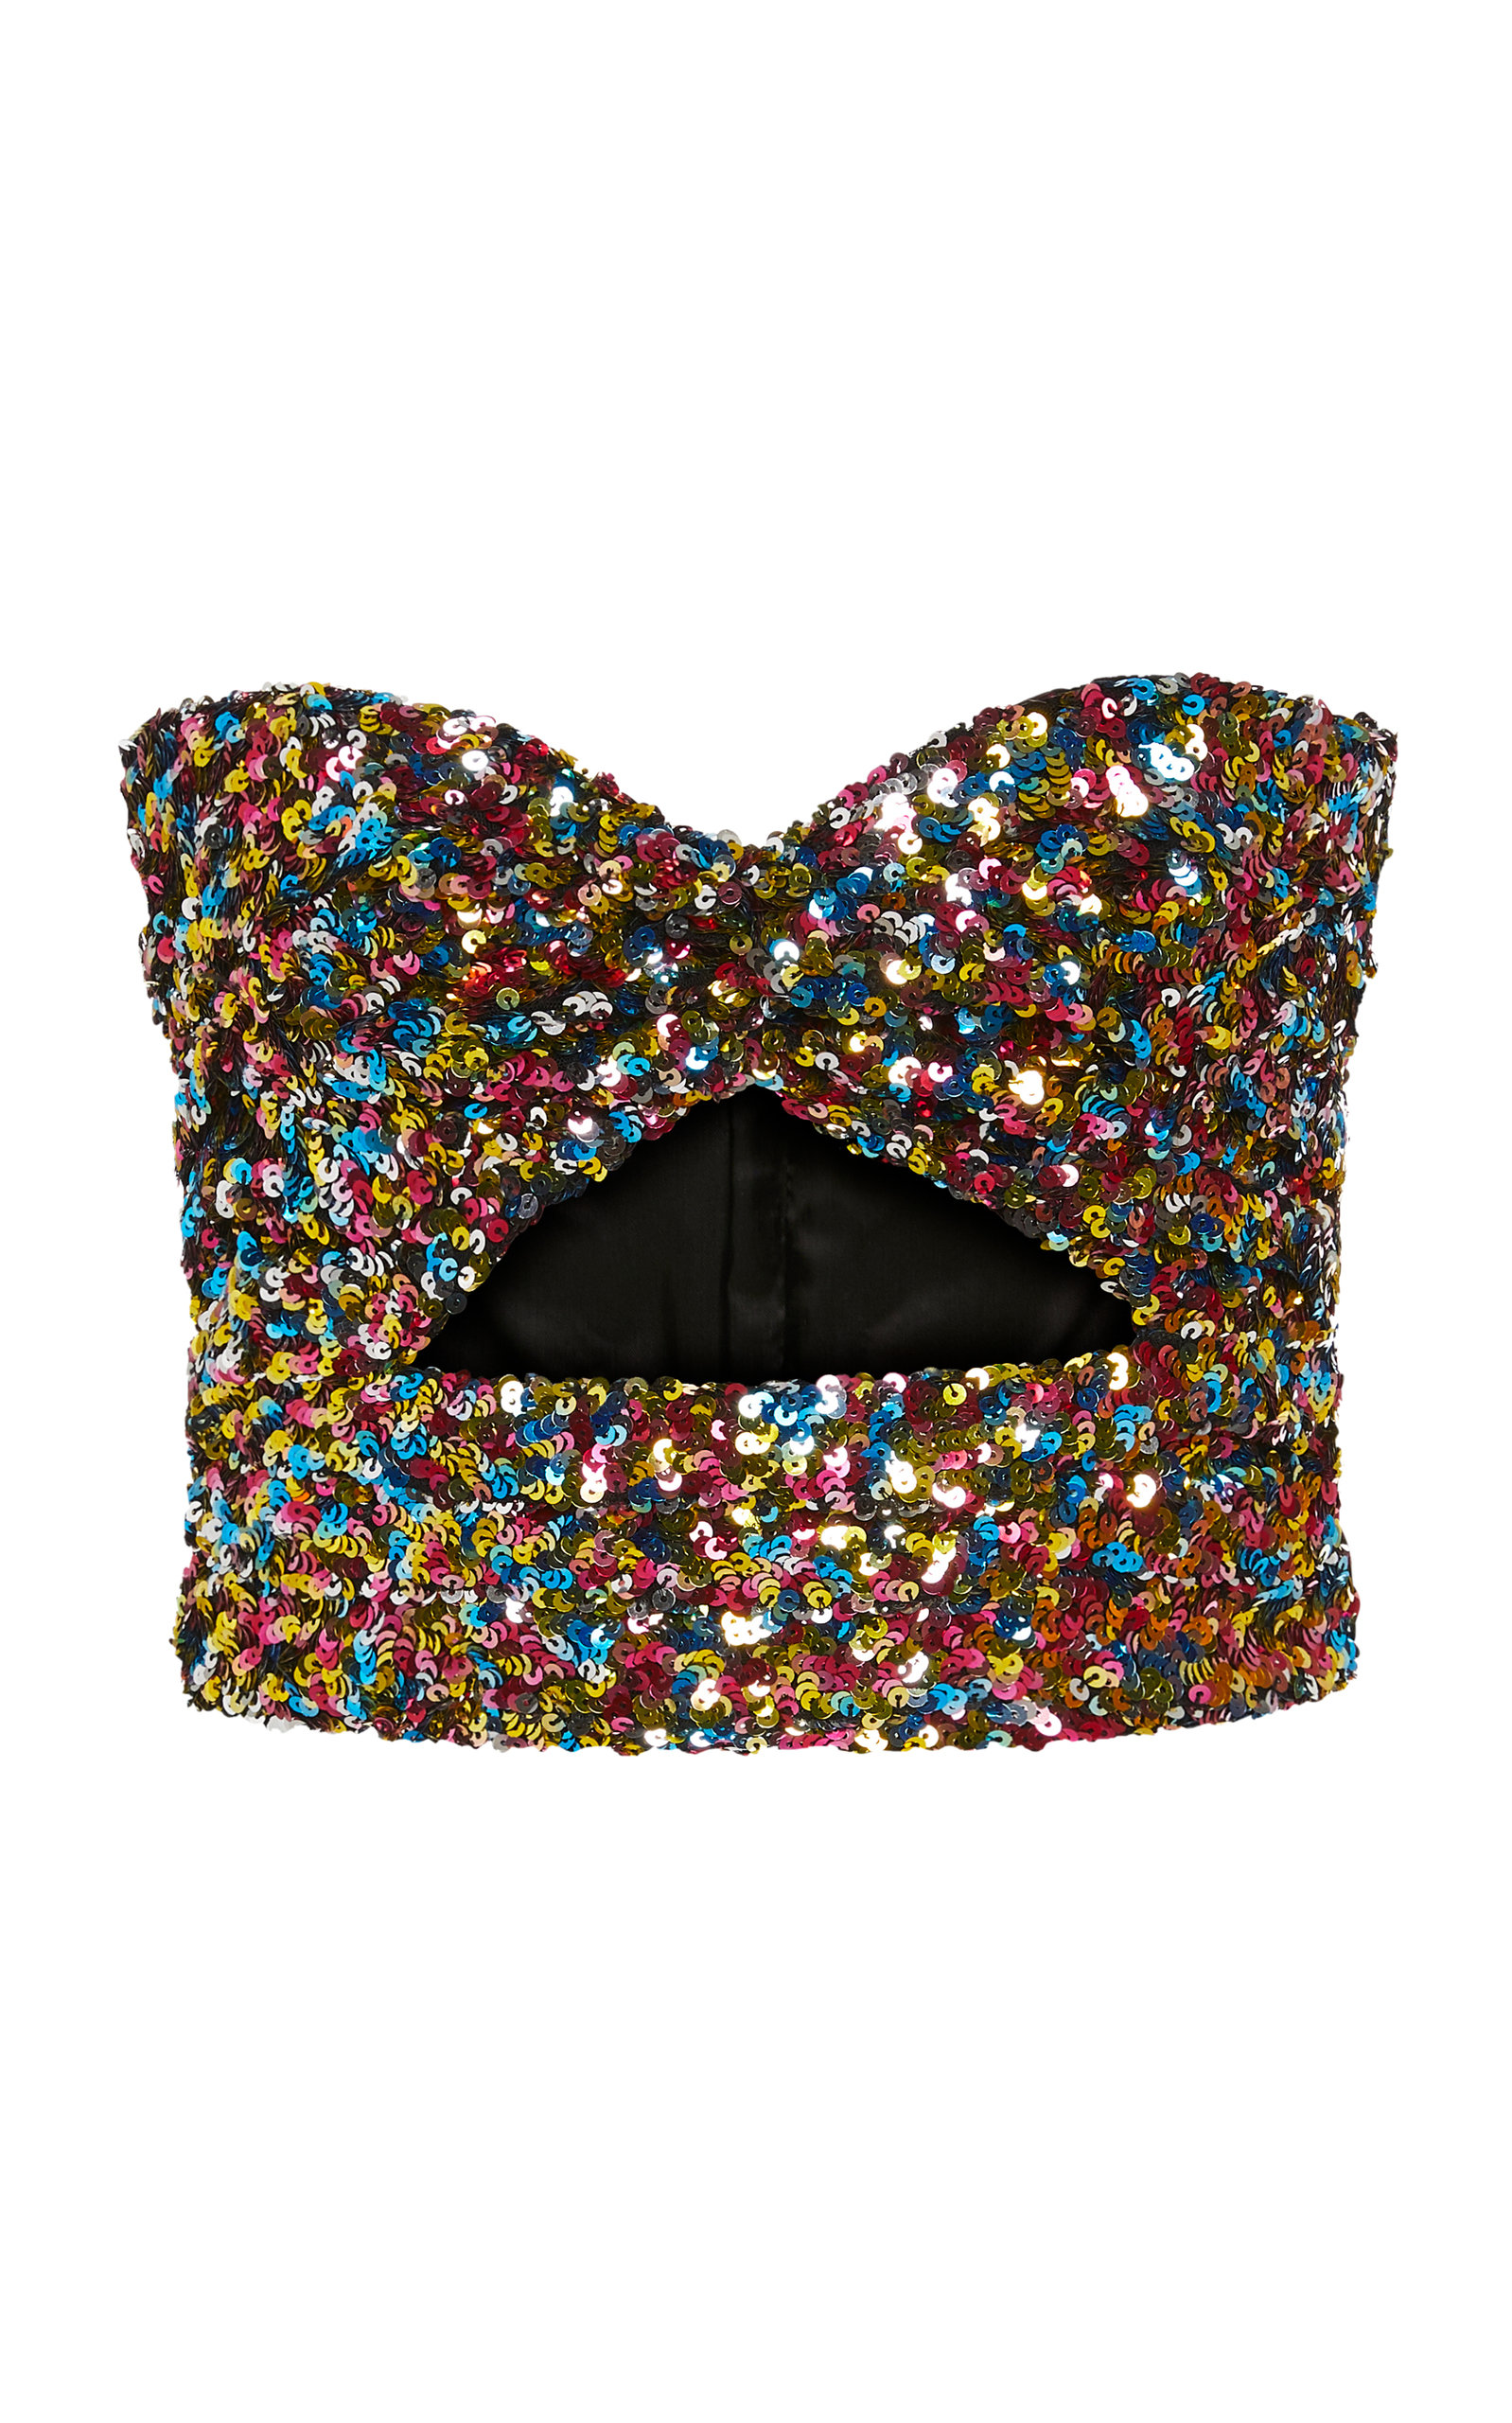 Attico Tops Sequin-Embroidered Cutout Bustier Top